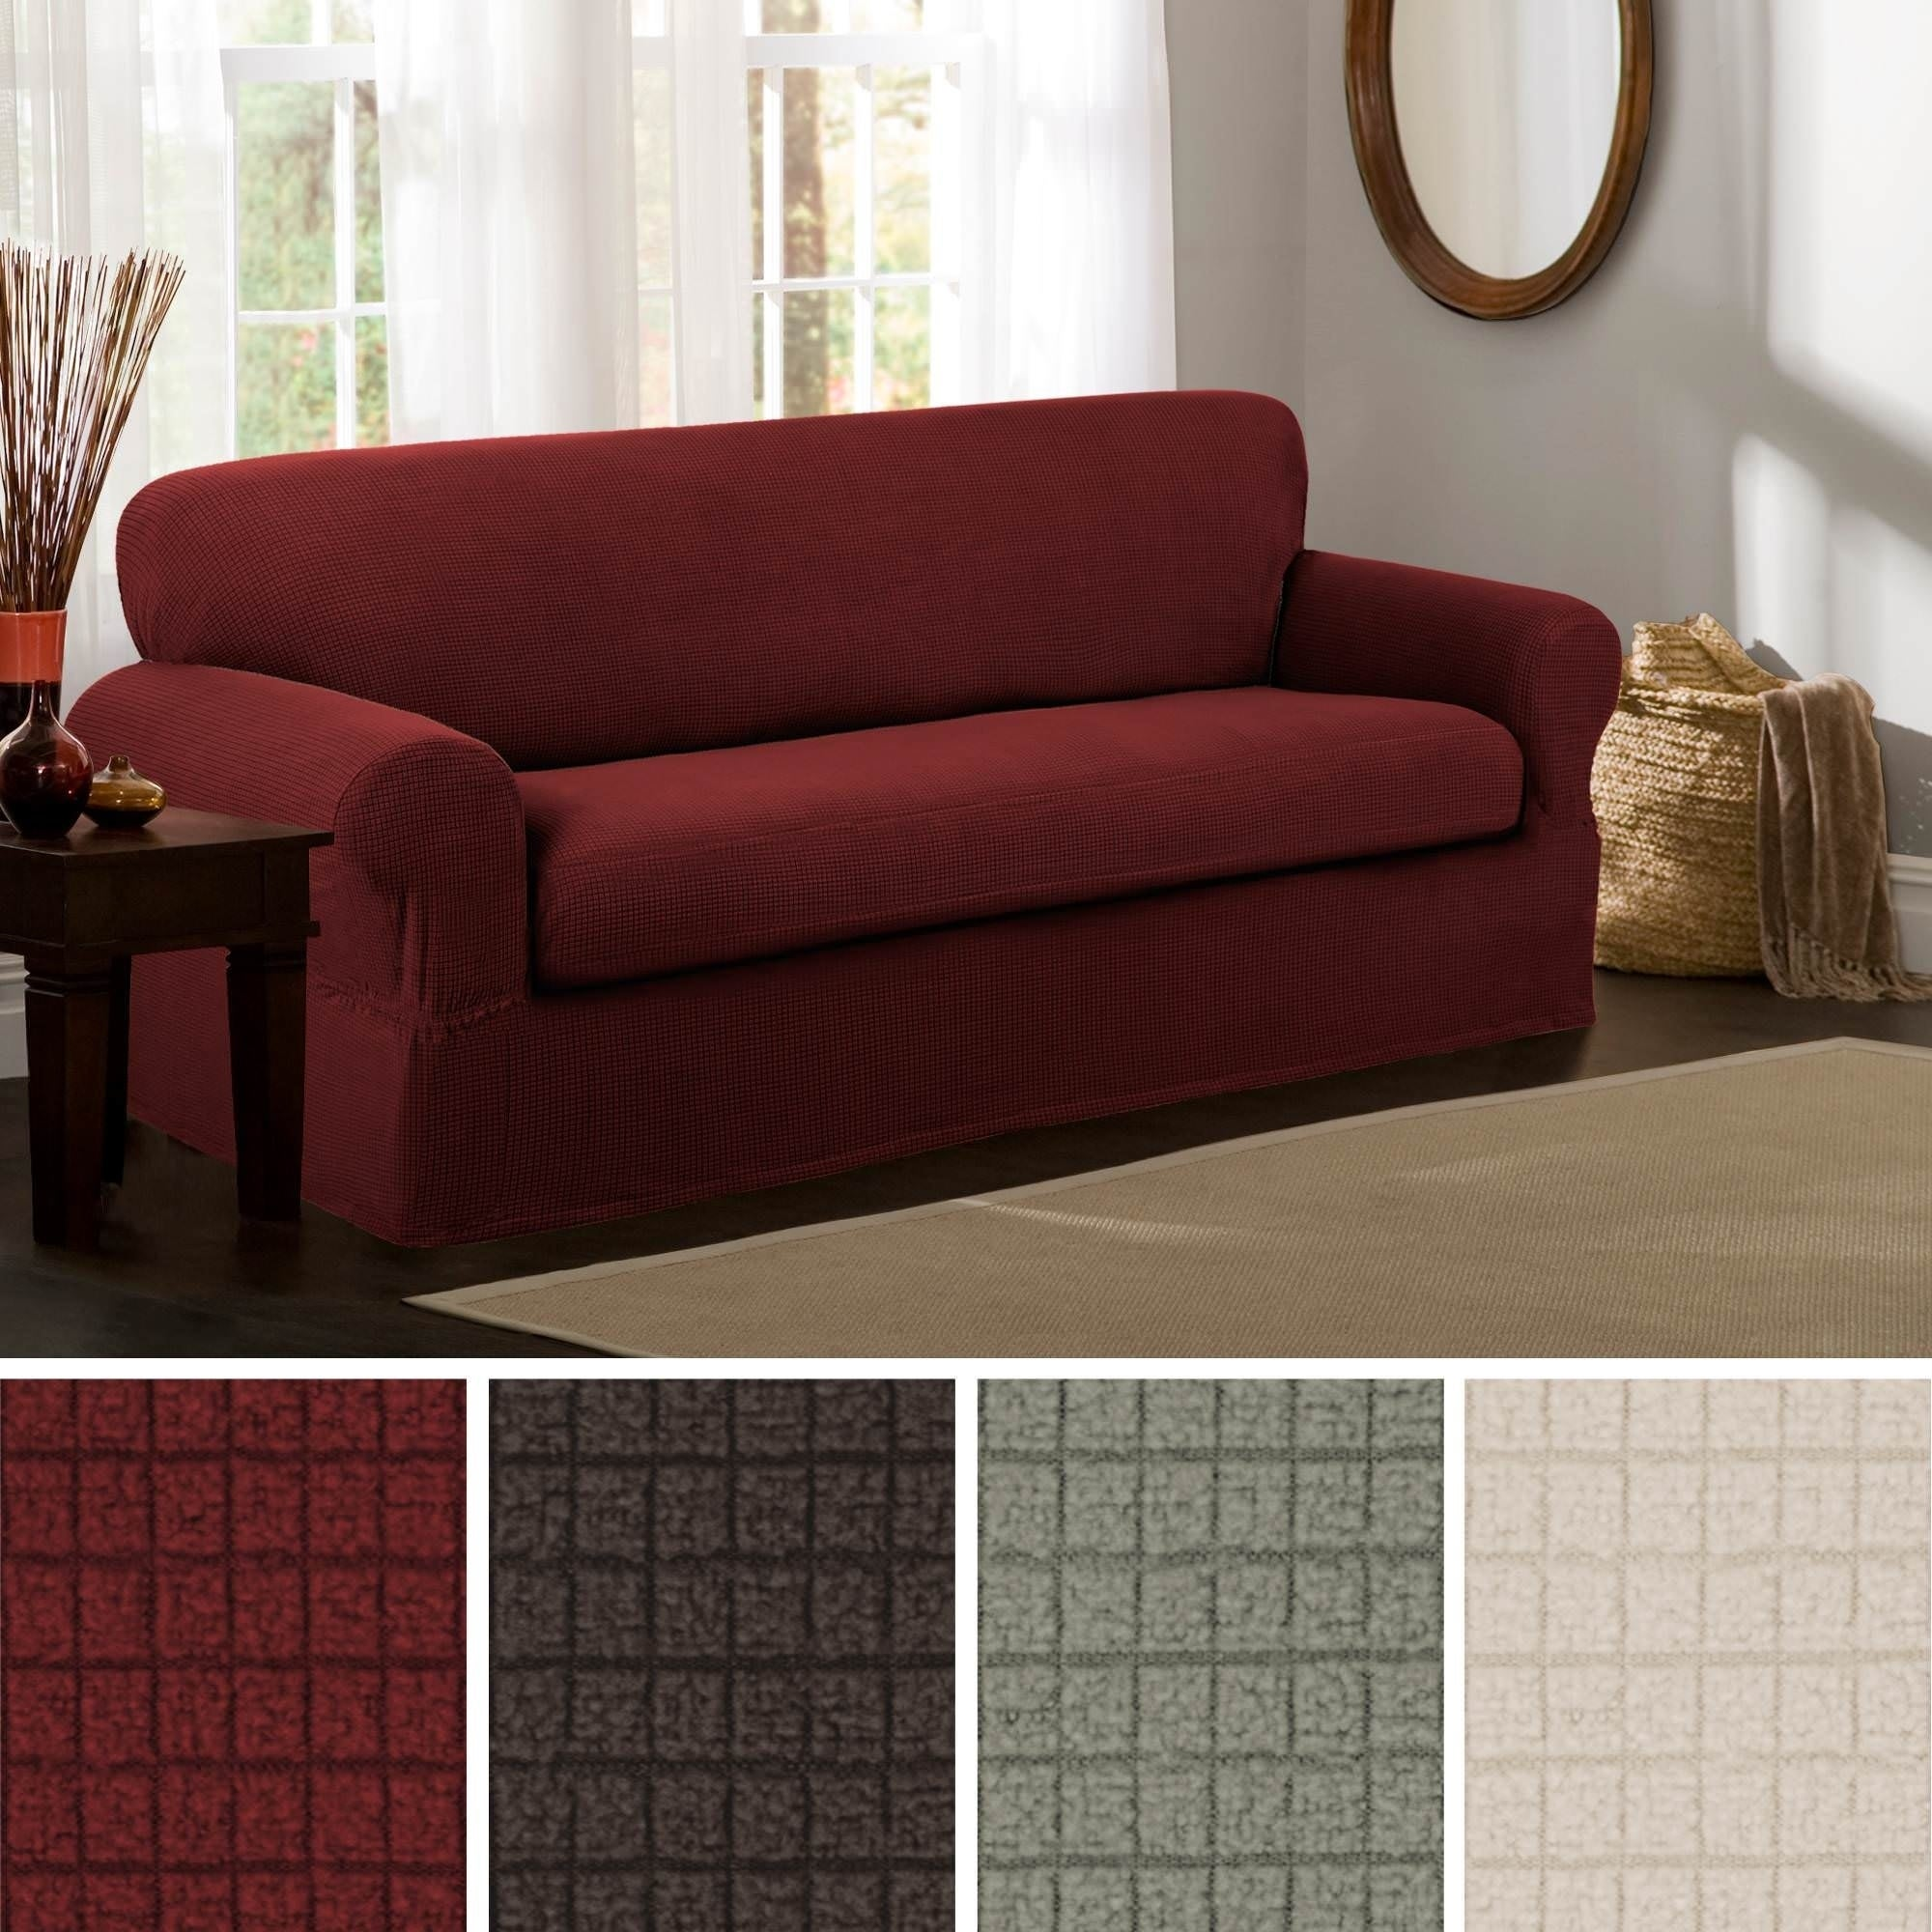 Shop Maytex Reeves Stretch 2 Piece Sofa Slipcover - Free Shipping ...